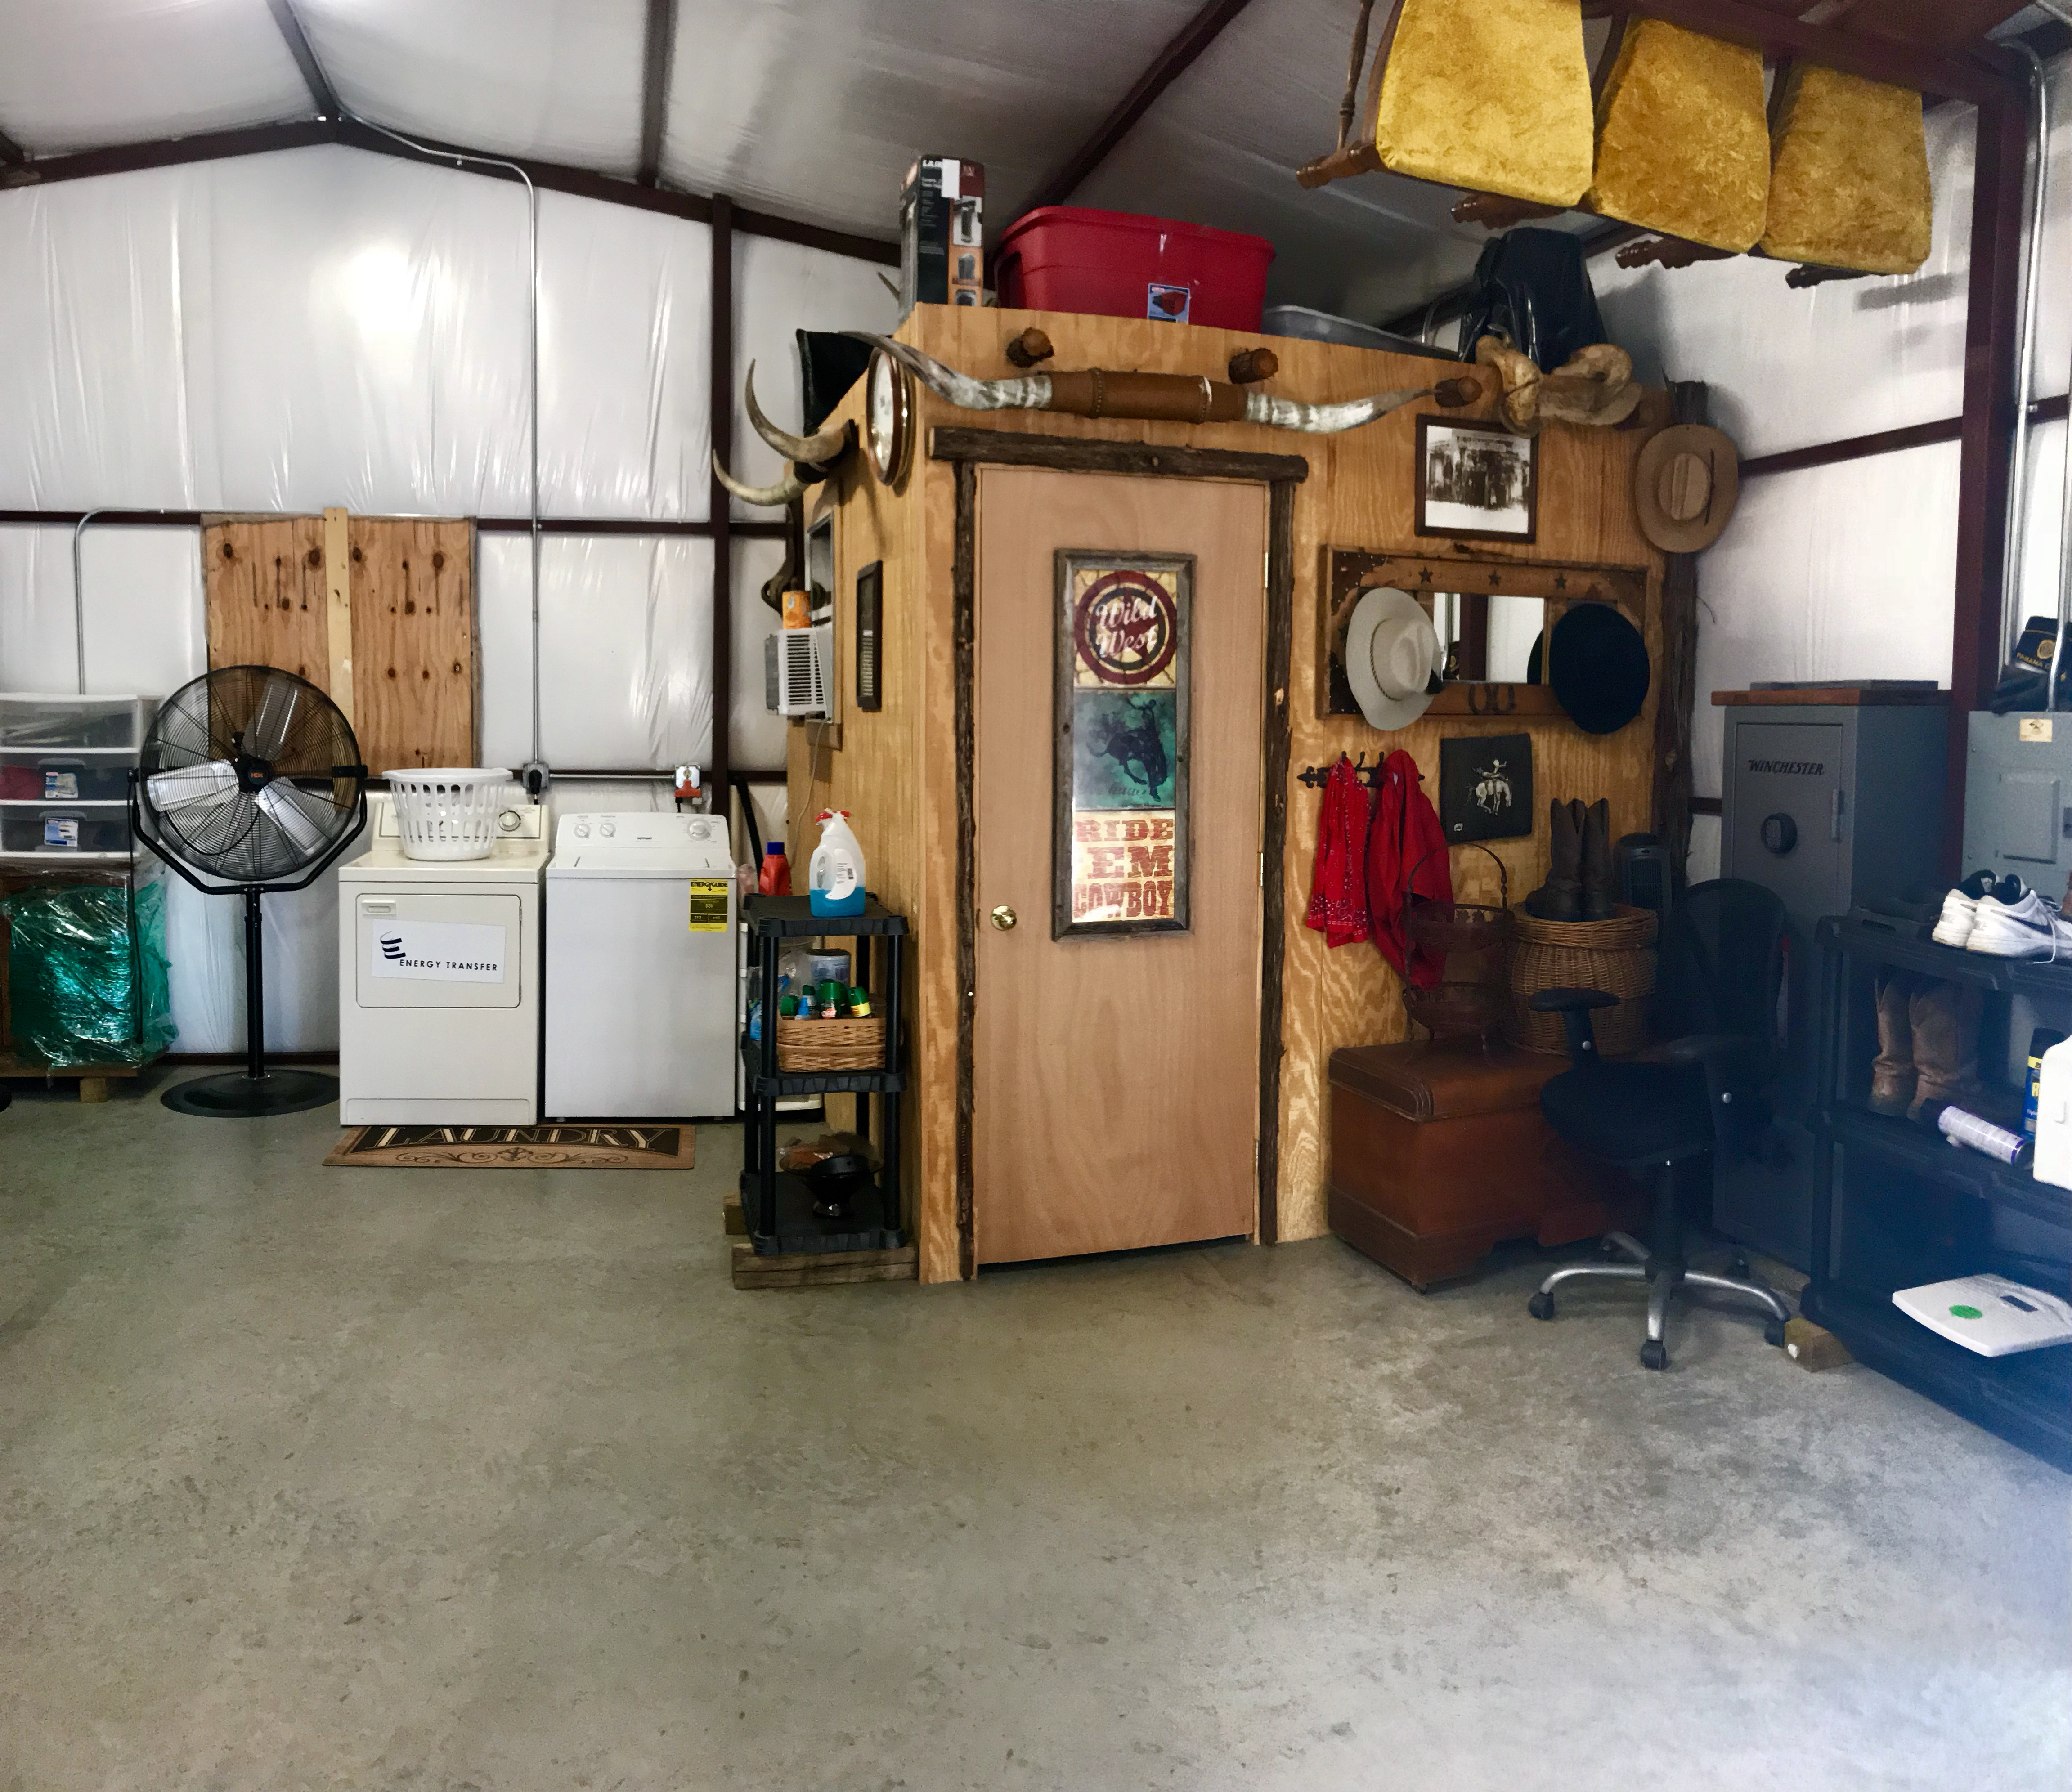 Another view of workshop building at Rural Lake Whitney Home for Sale